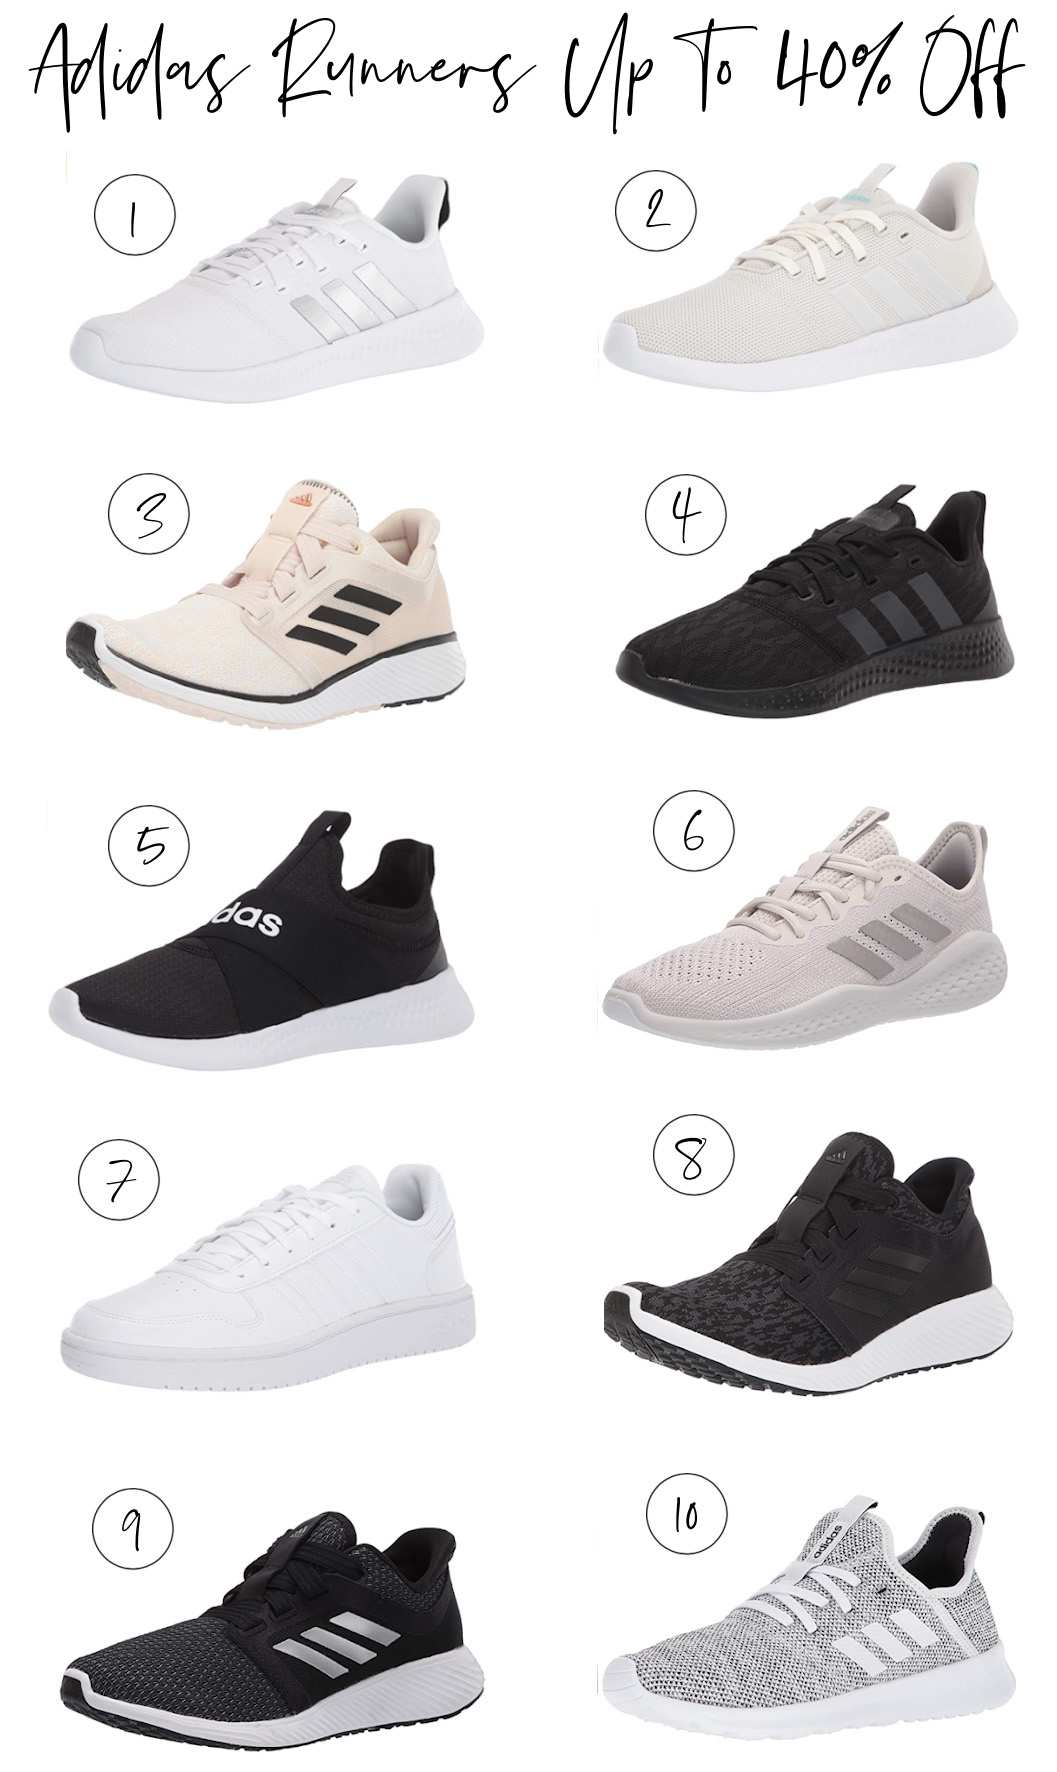 leggings amazong prime day comfortable clothing   Amazon prime day gifts   loungewear on amazon   comfortable clothes   fashion blogger Mash Elle } sneakers   running shoes